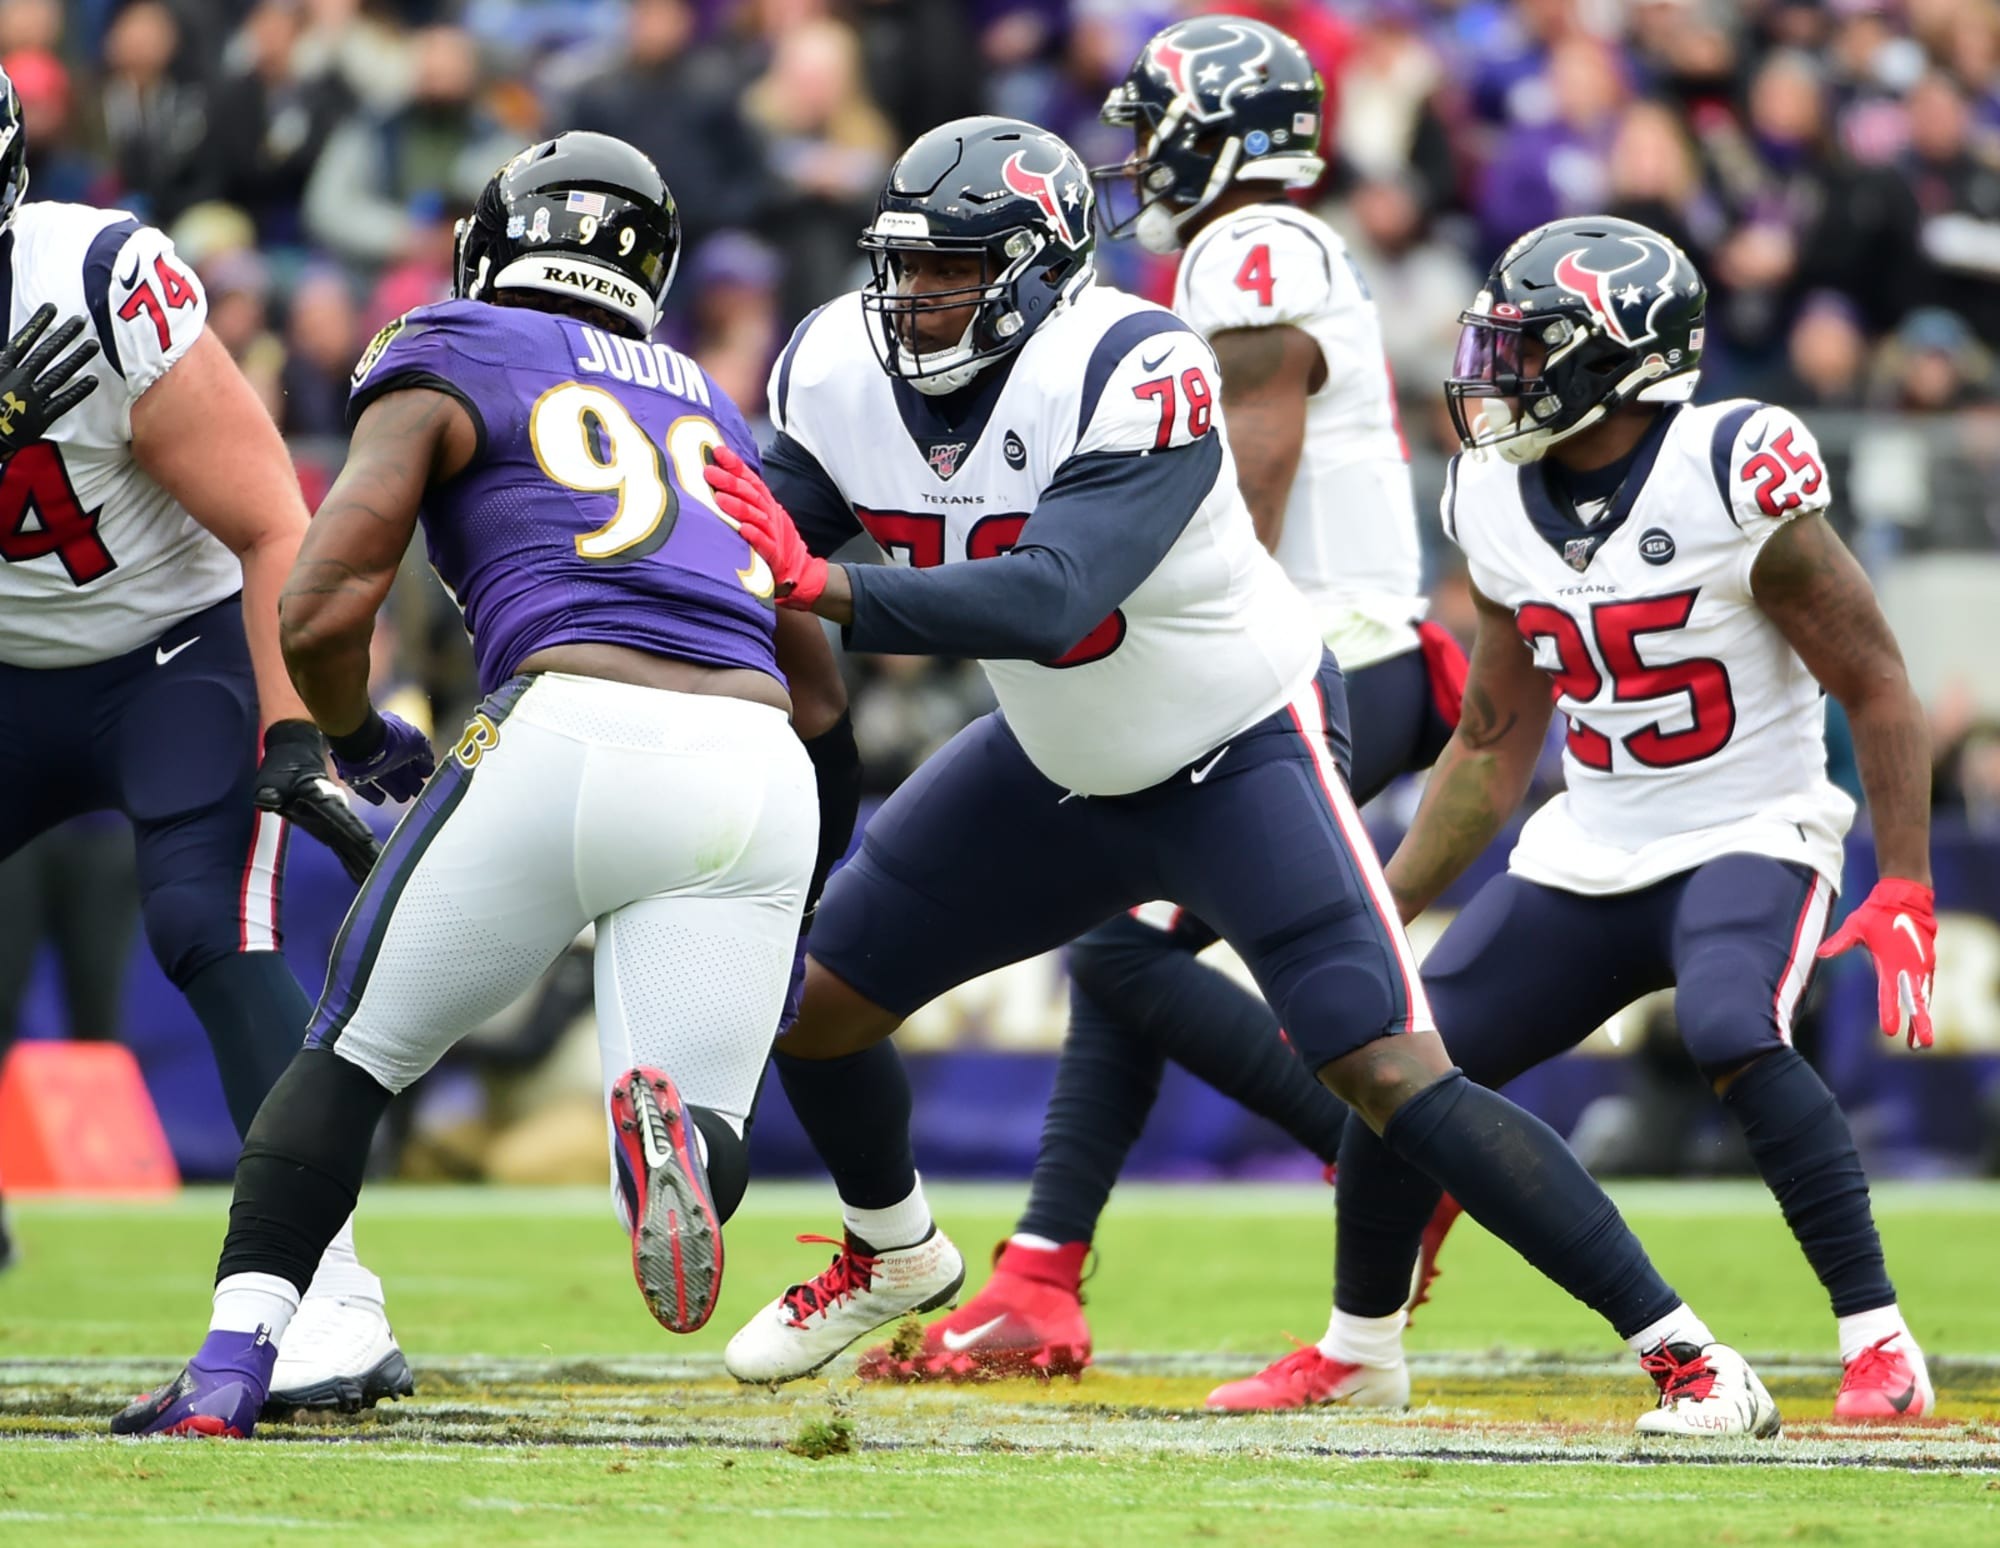 Houston Texans: Laremy Tunsil brings franchise respect at tackle